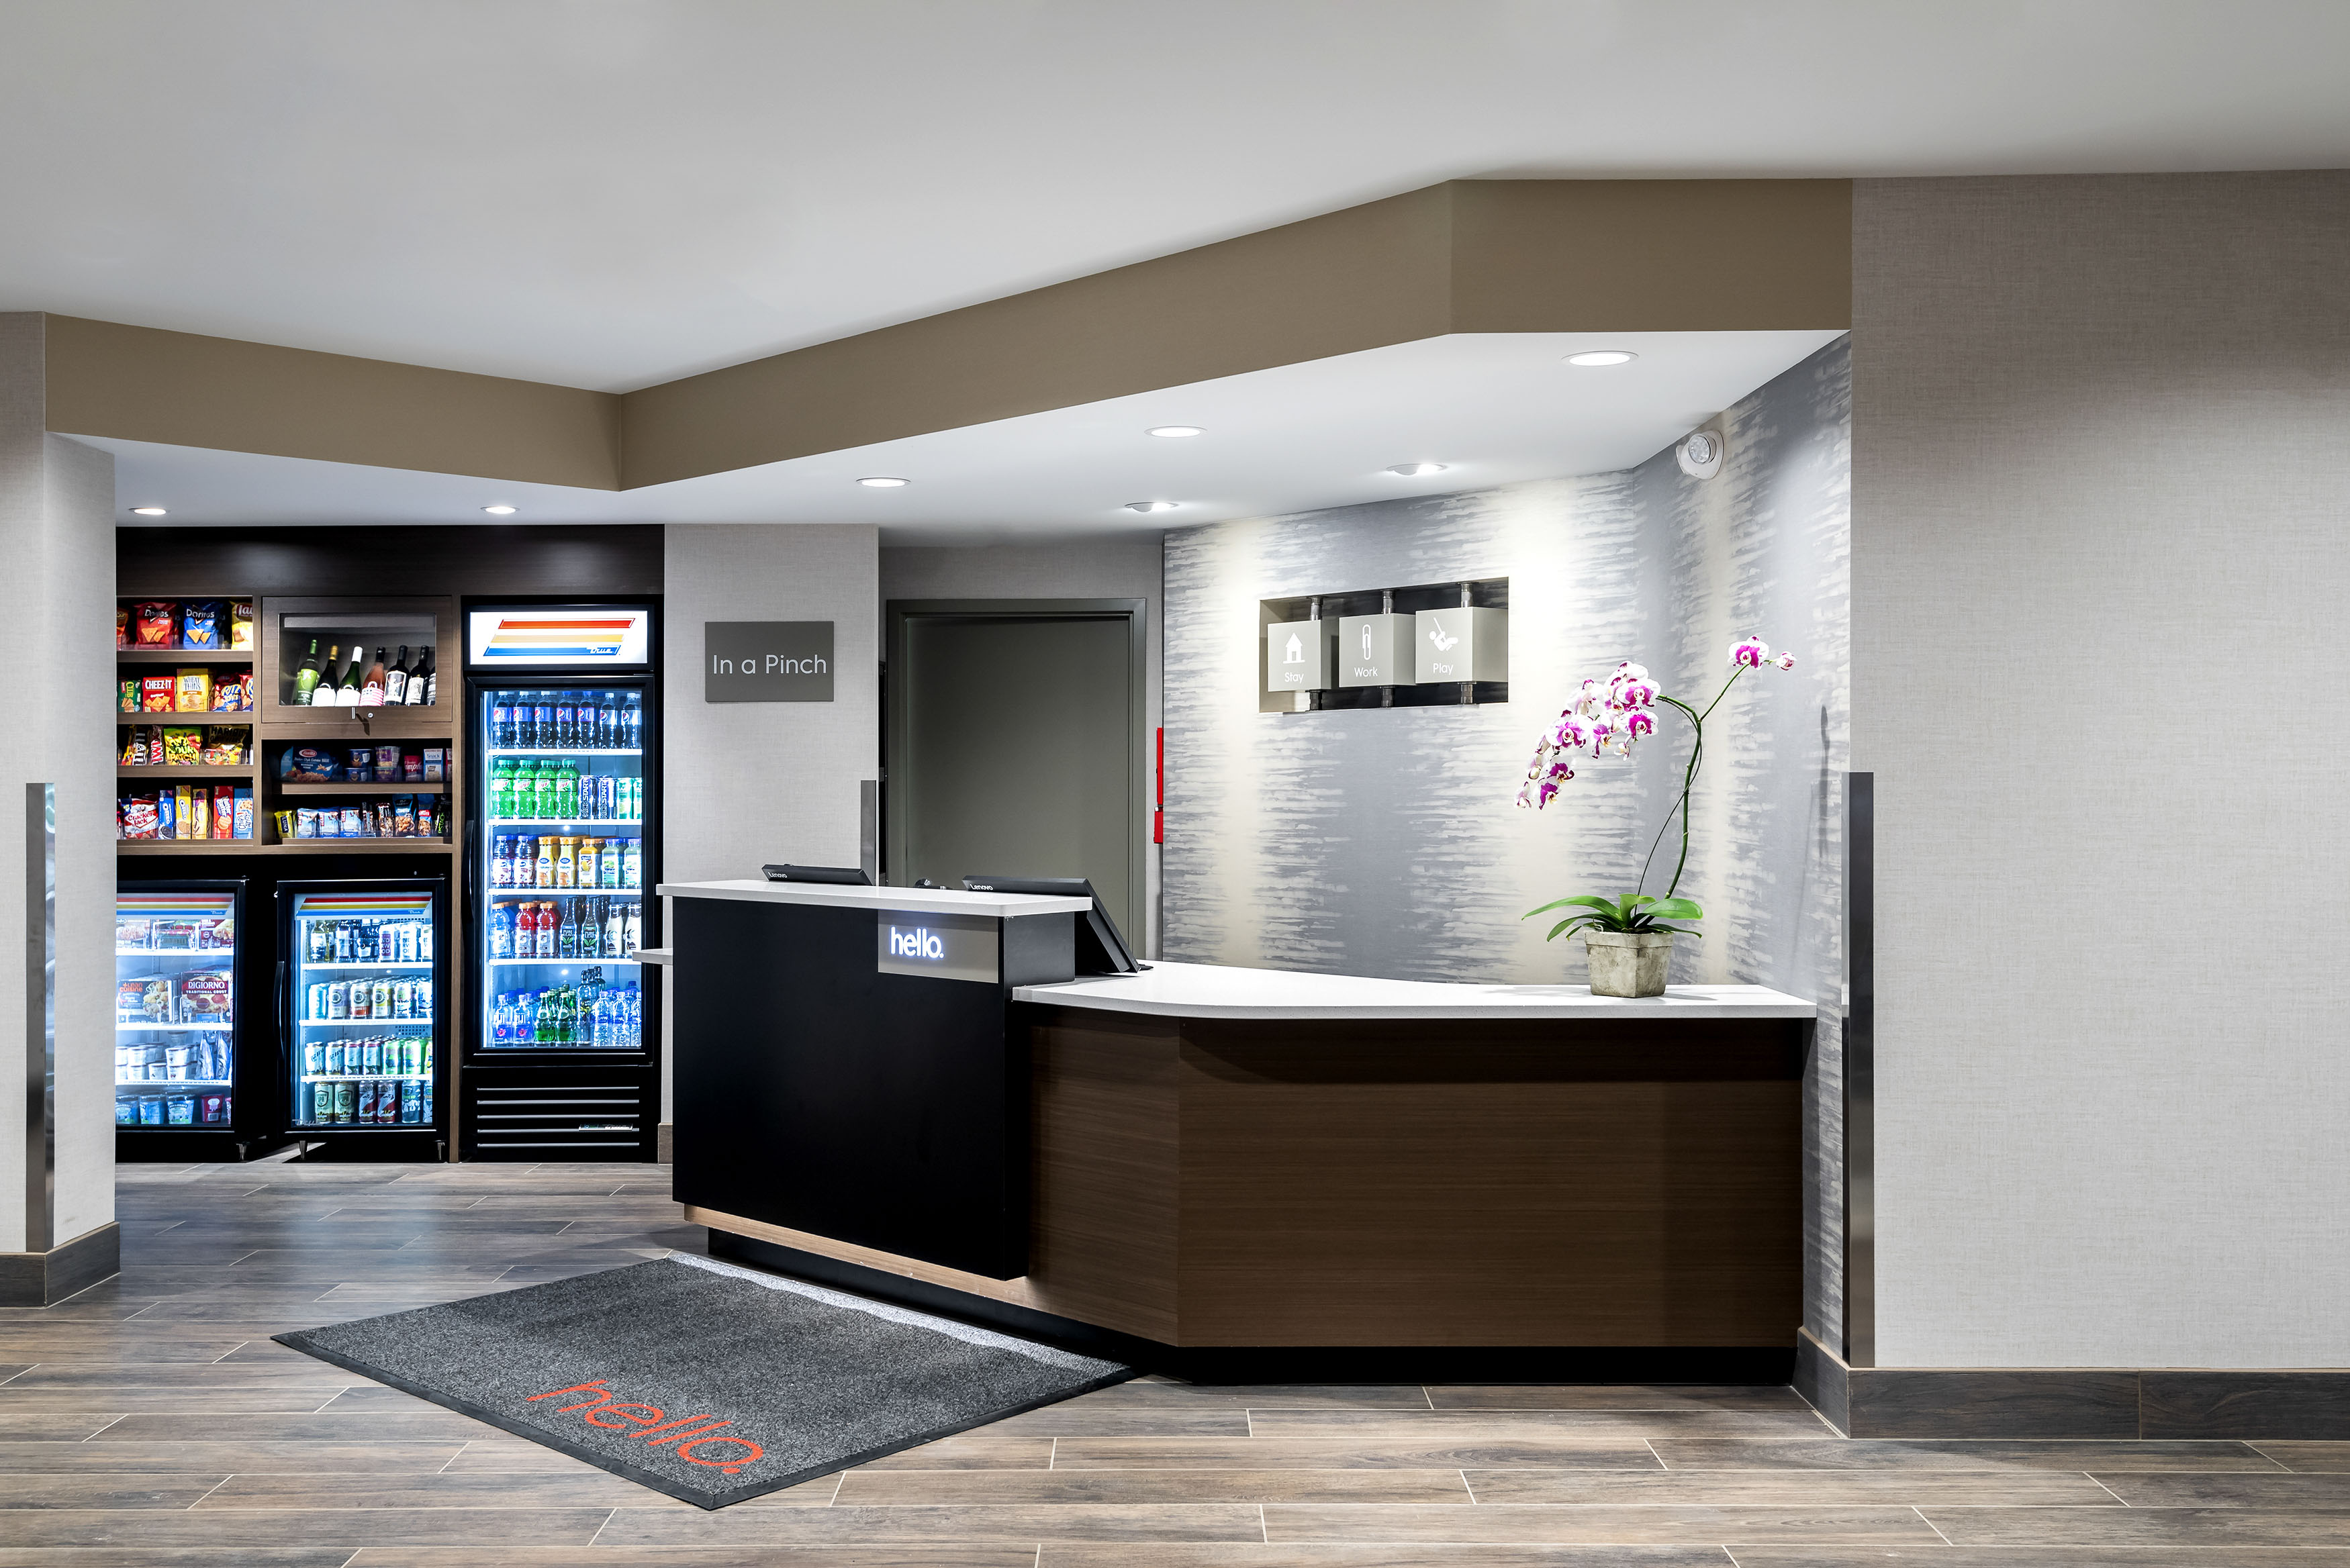 Towne-place-suite-marriott-hotels-towneplace-hotel-whitefish-montana-front-desk